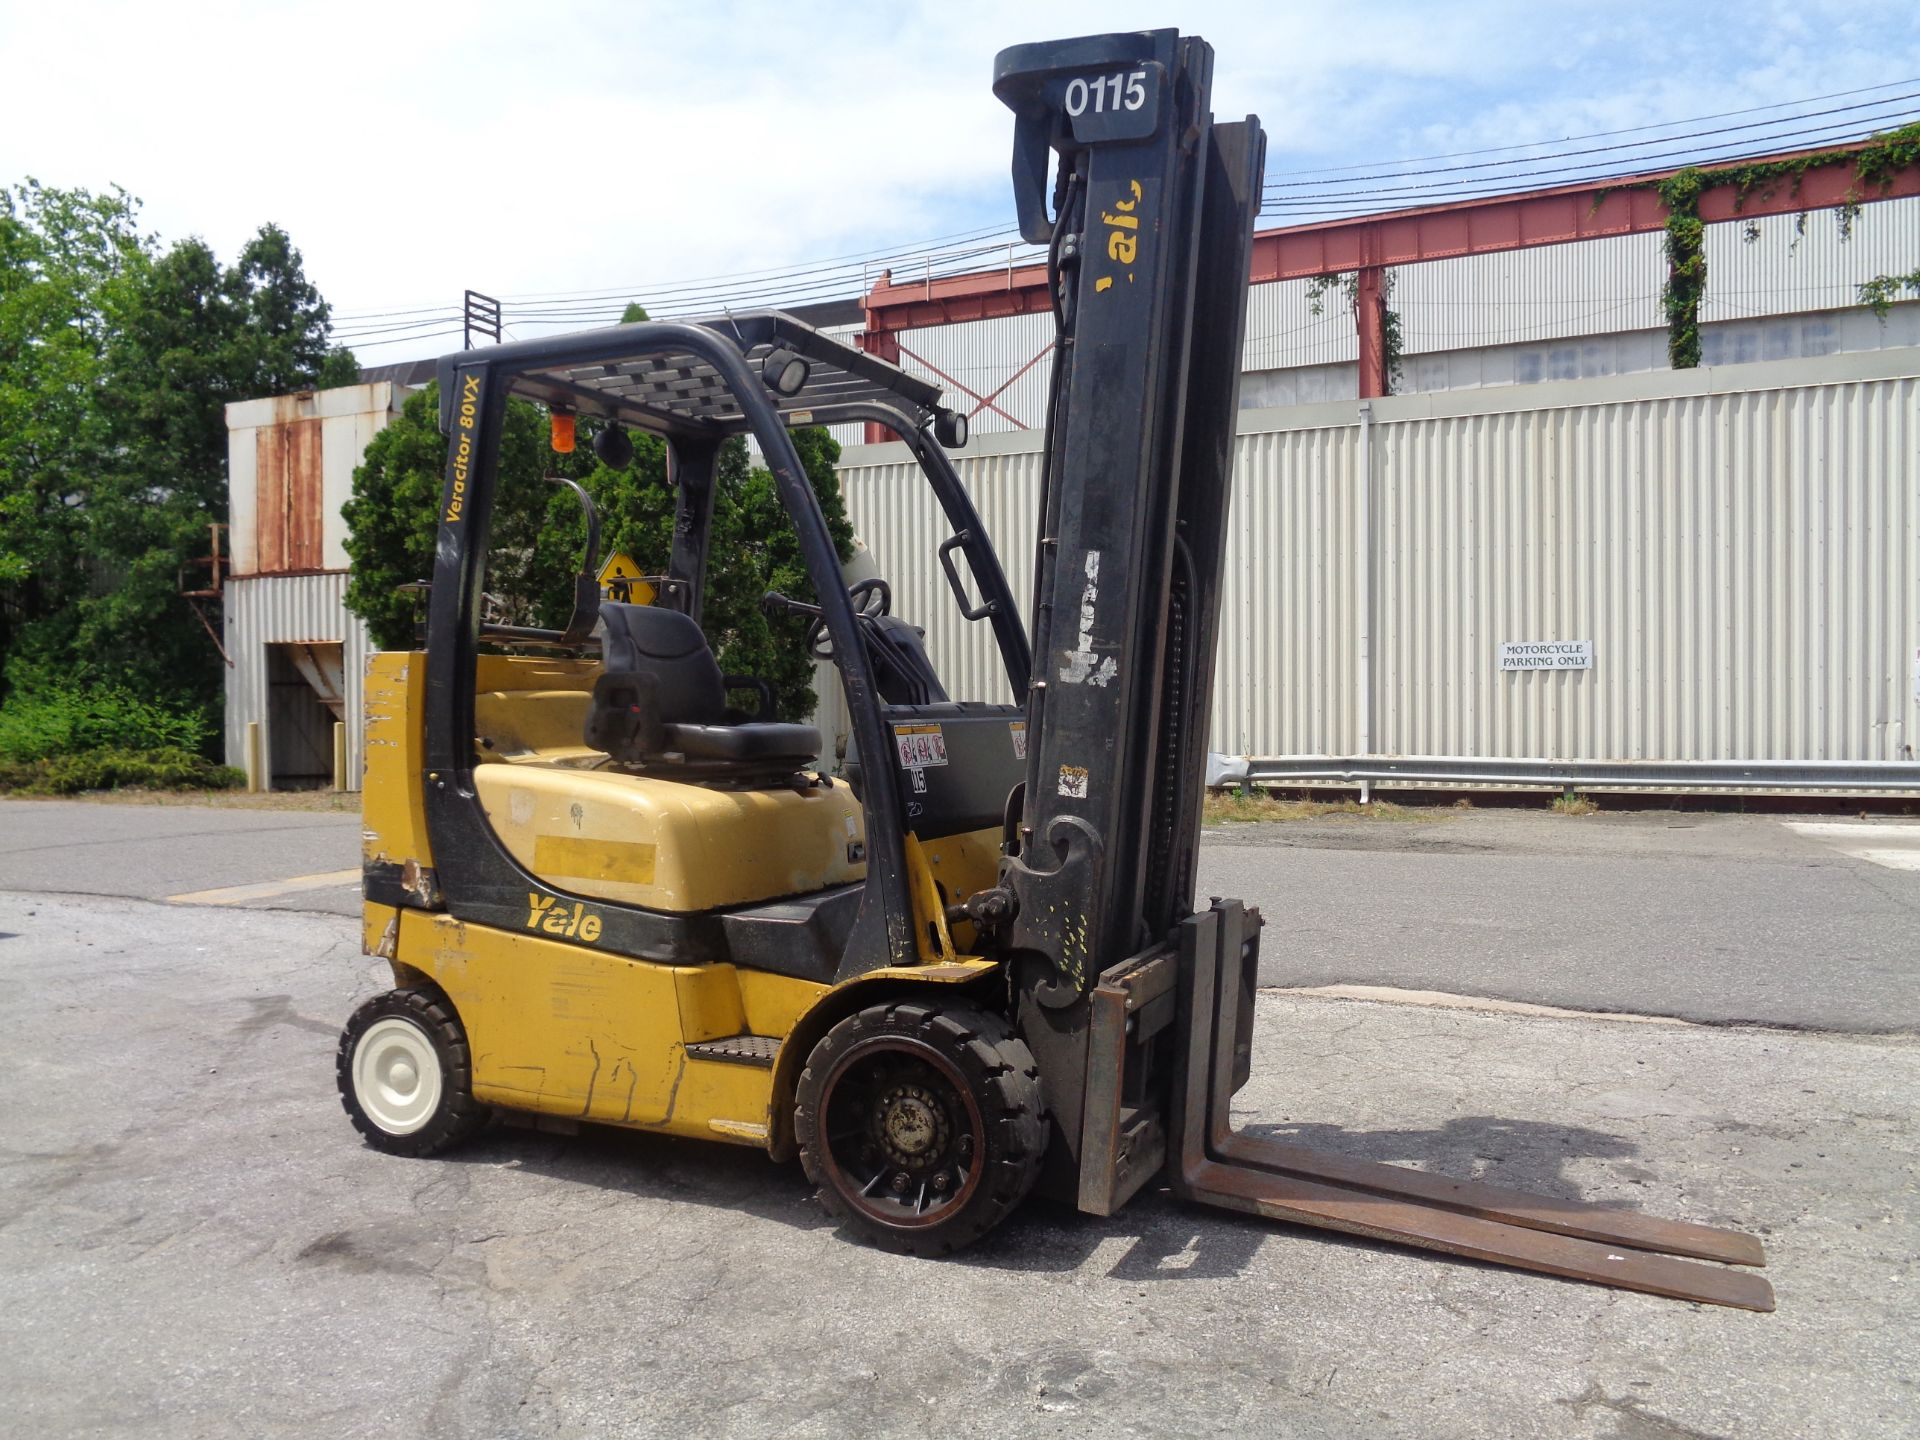 Yale GC080VXNGSE107.6 8,000lb Forklift - Image 4 of 18